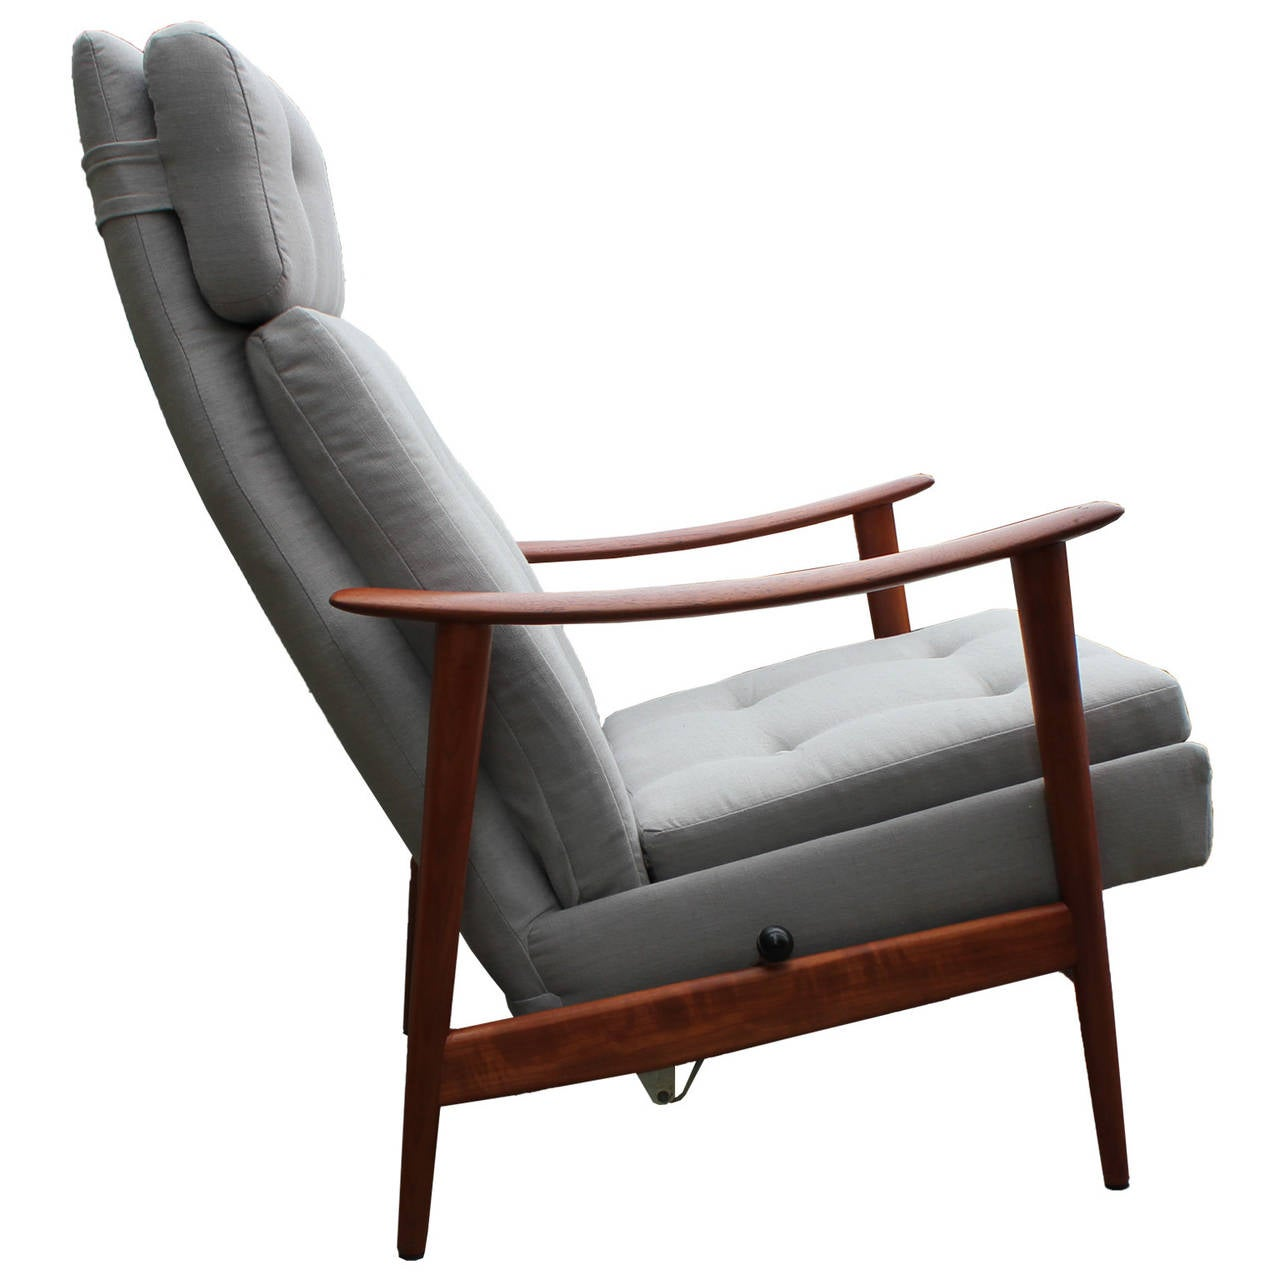 Restored Scandinavian Teak Recliner In Grey Linen At 1stdibs